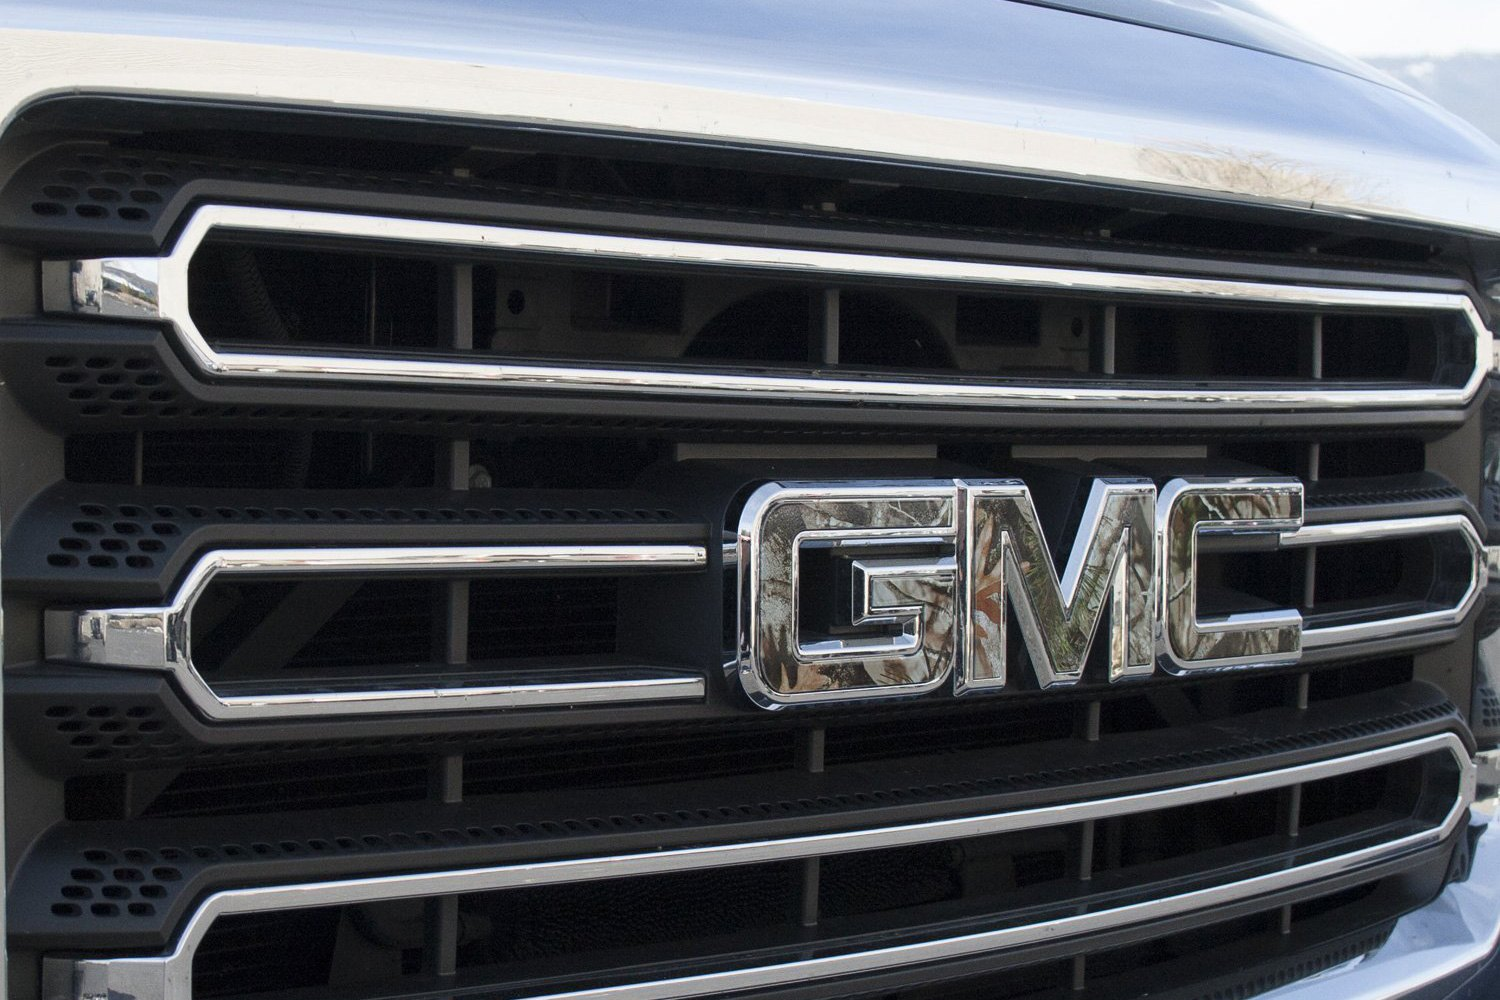 abdr gmc sierra 2014 2015 gmc grille letter inserts With gmc grill letters